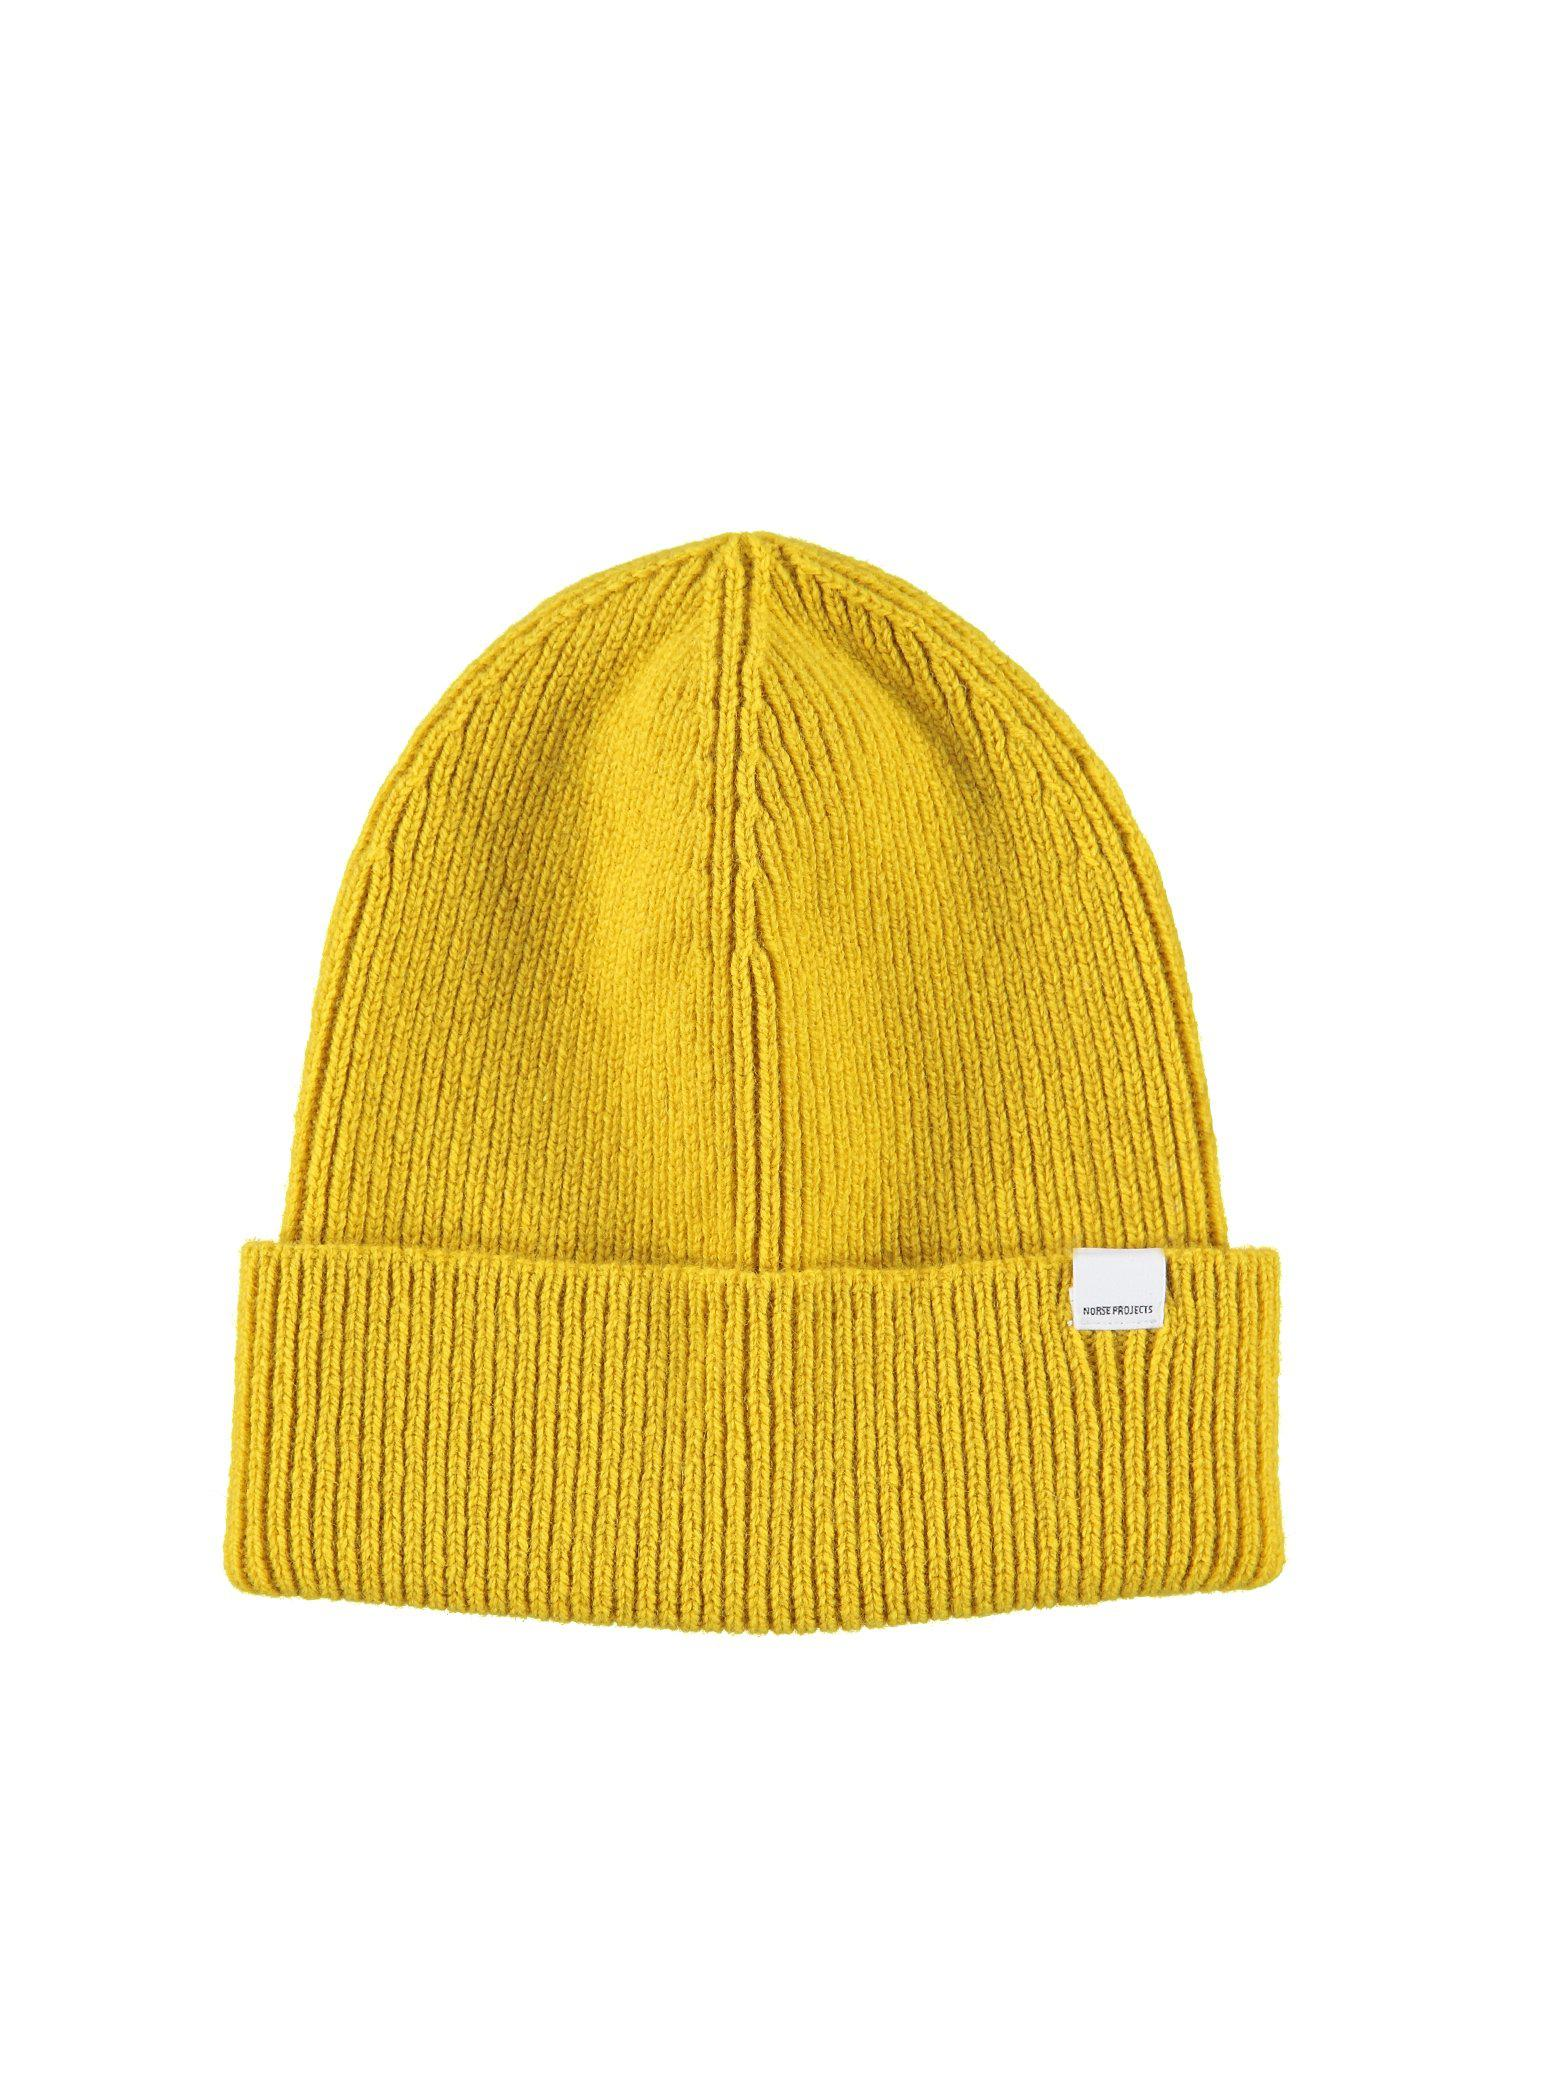 6629dfc7ab9 Lyst - Norse Projects Norse Lambswool Beanie in Yellow